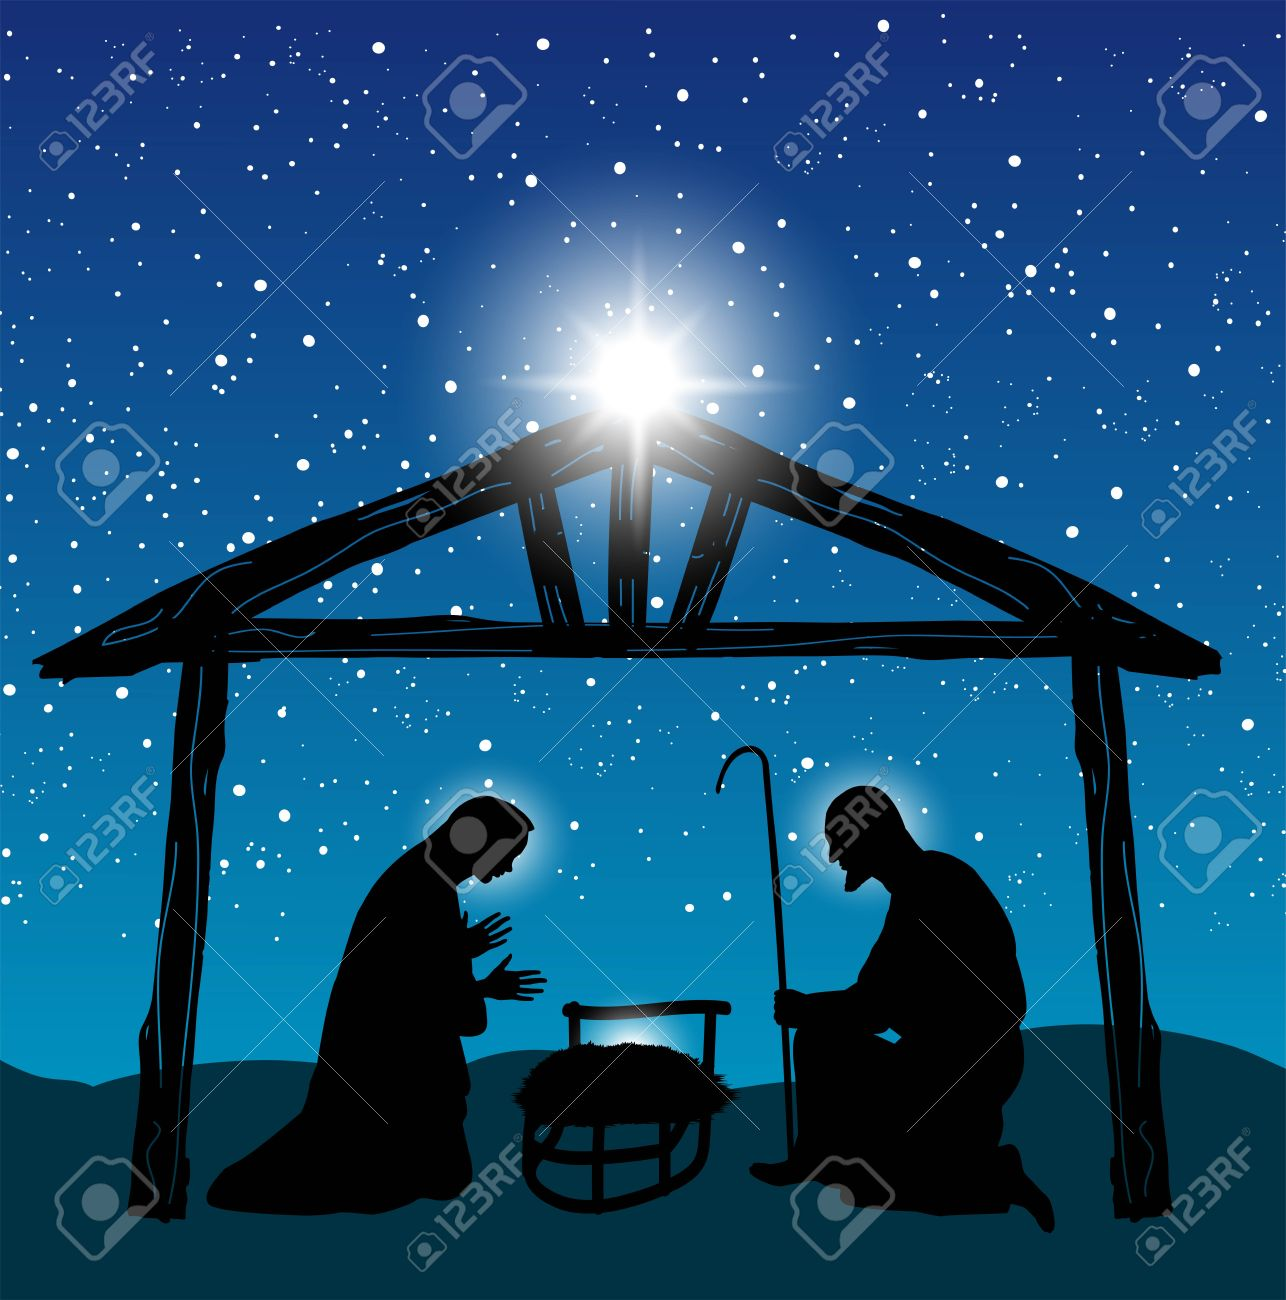 Christmas Christian Nativity Scene With Baby Jesus In The Manger Silhouette And Star Of